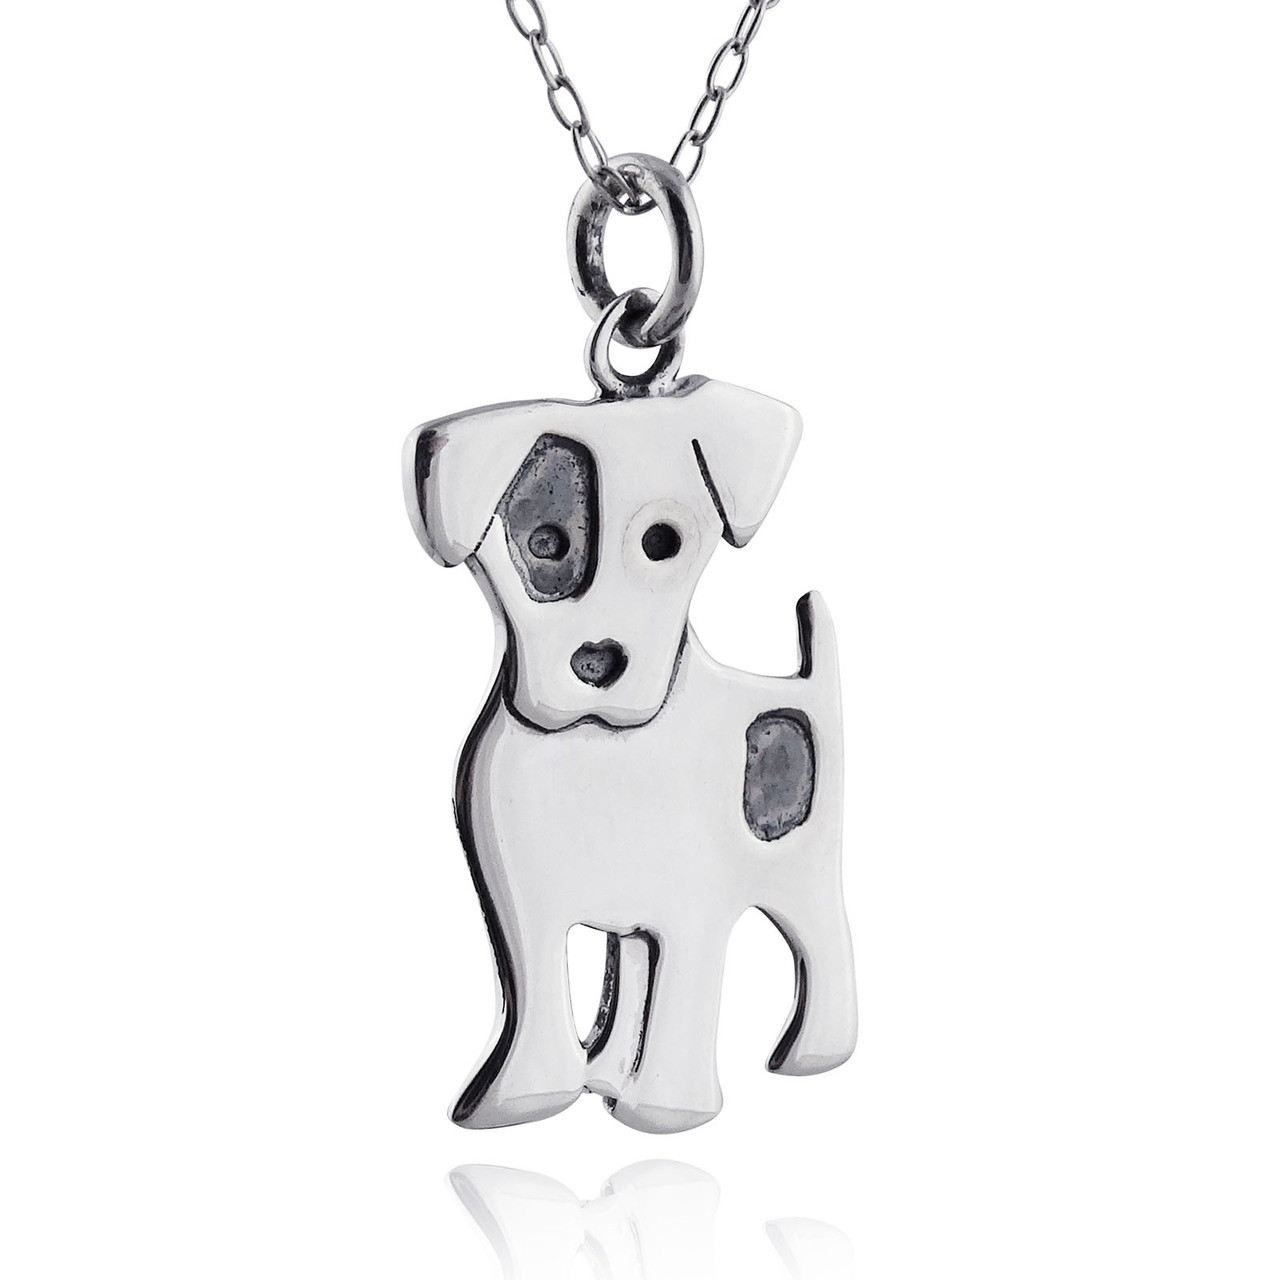 Jack Russell Terrier 925 Silver Dog Earrings aZY5ghJw